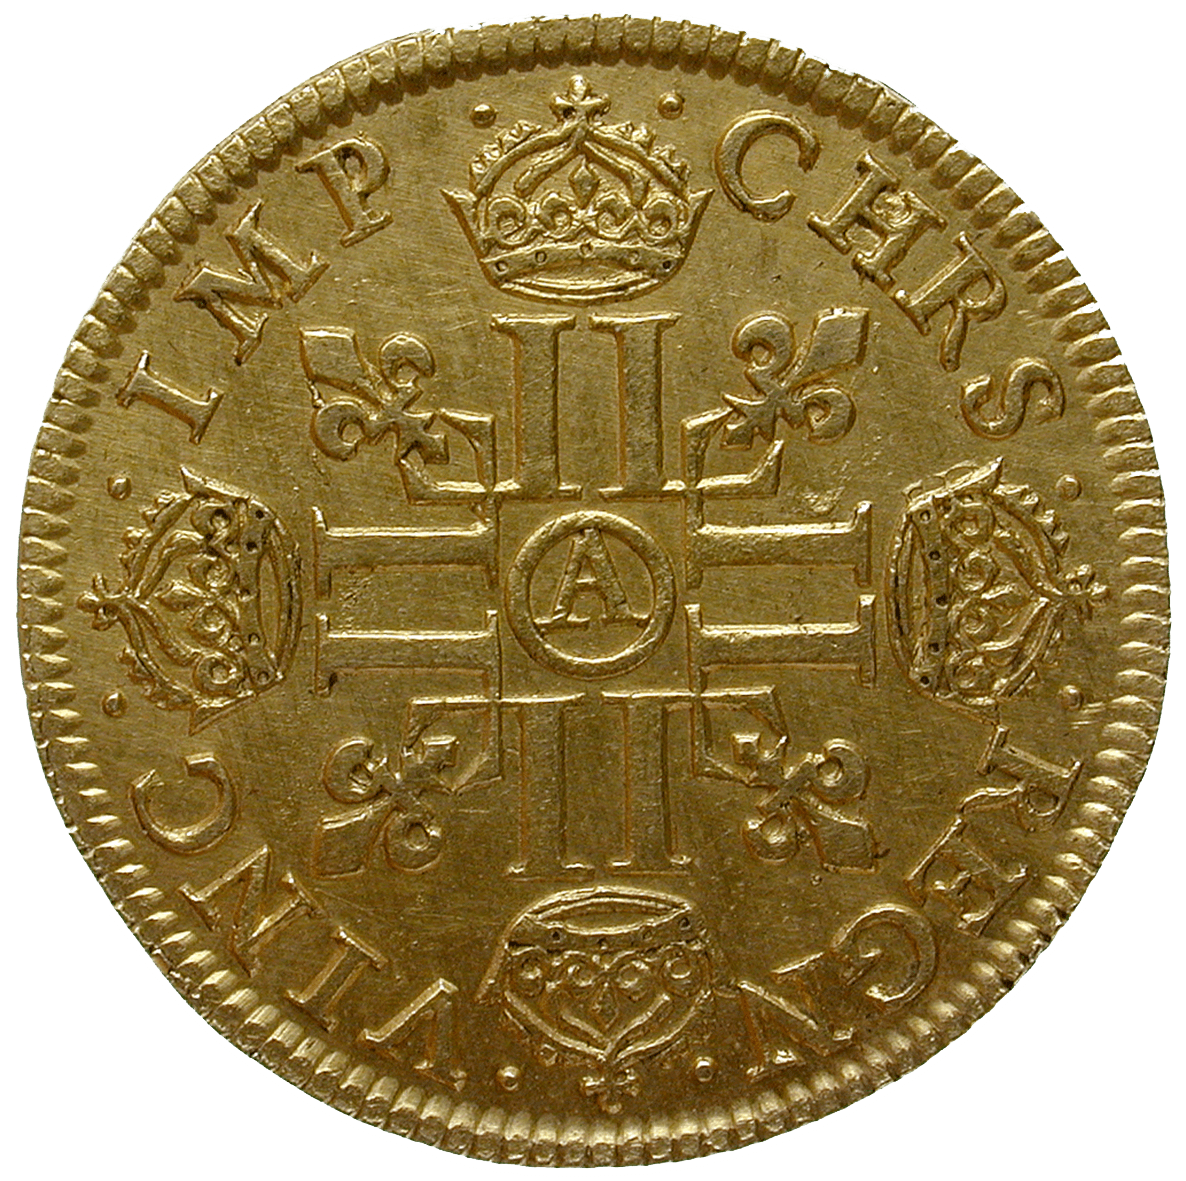 Kingdom of France, Louis XIII, Louis d'or 1641 (reverse)